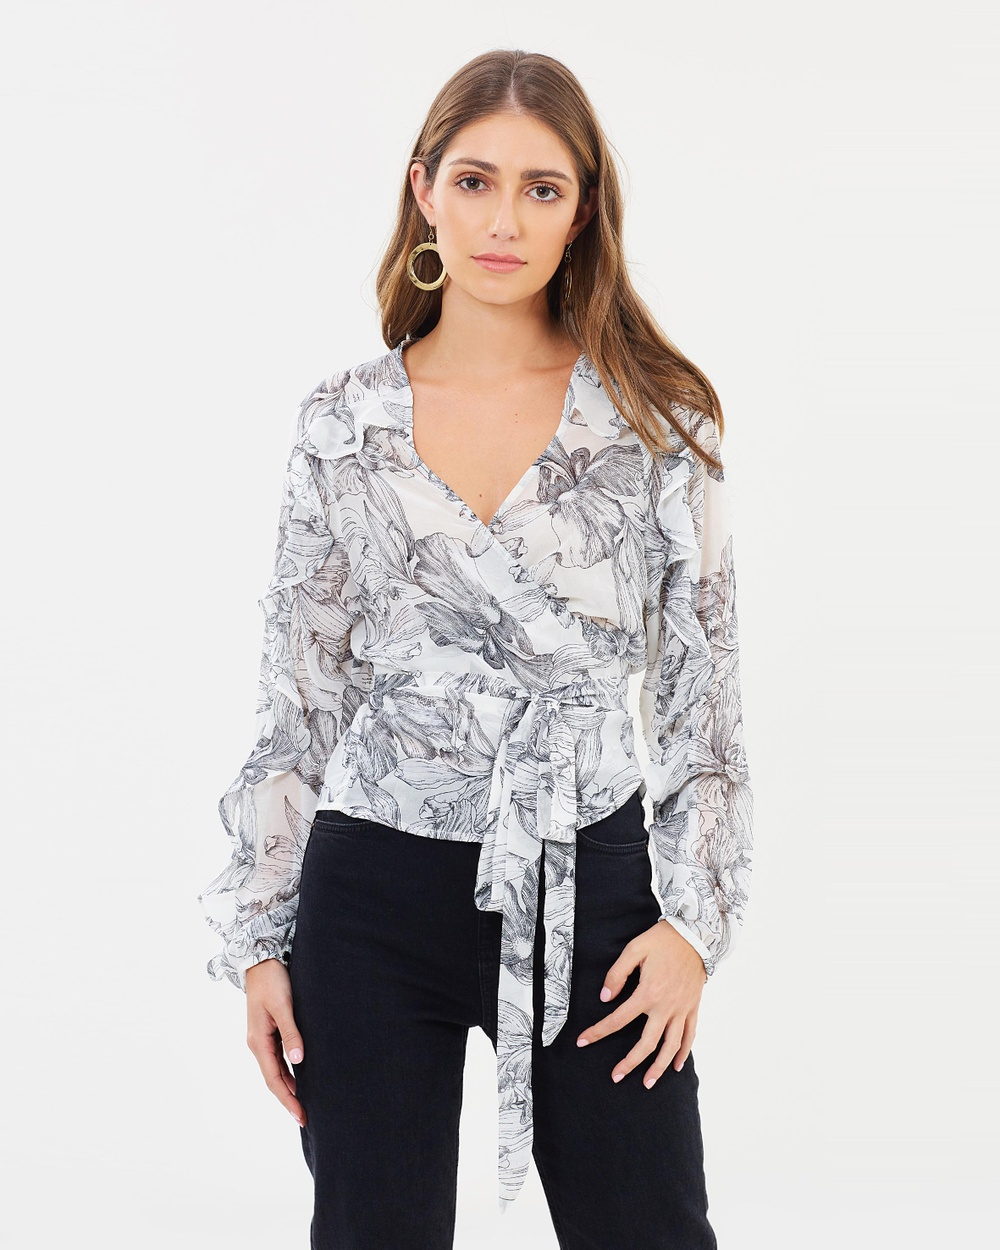 Fresh Soul Nevada Top Tops White Floral Print Nevada Top